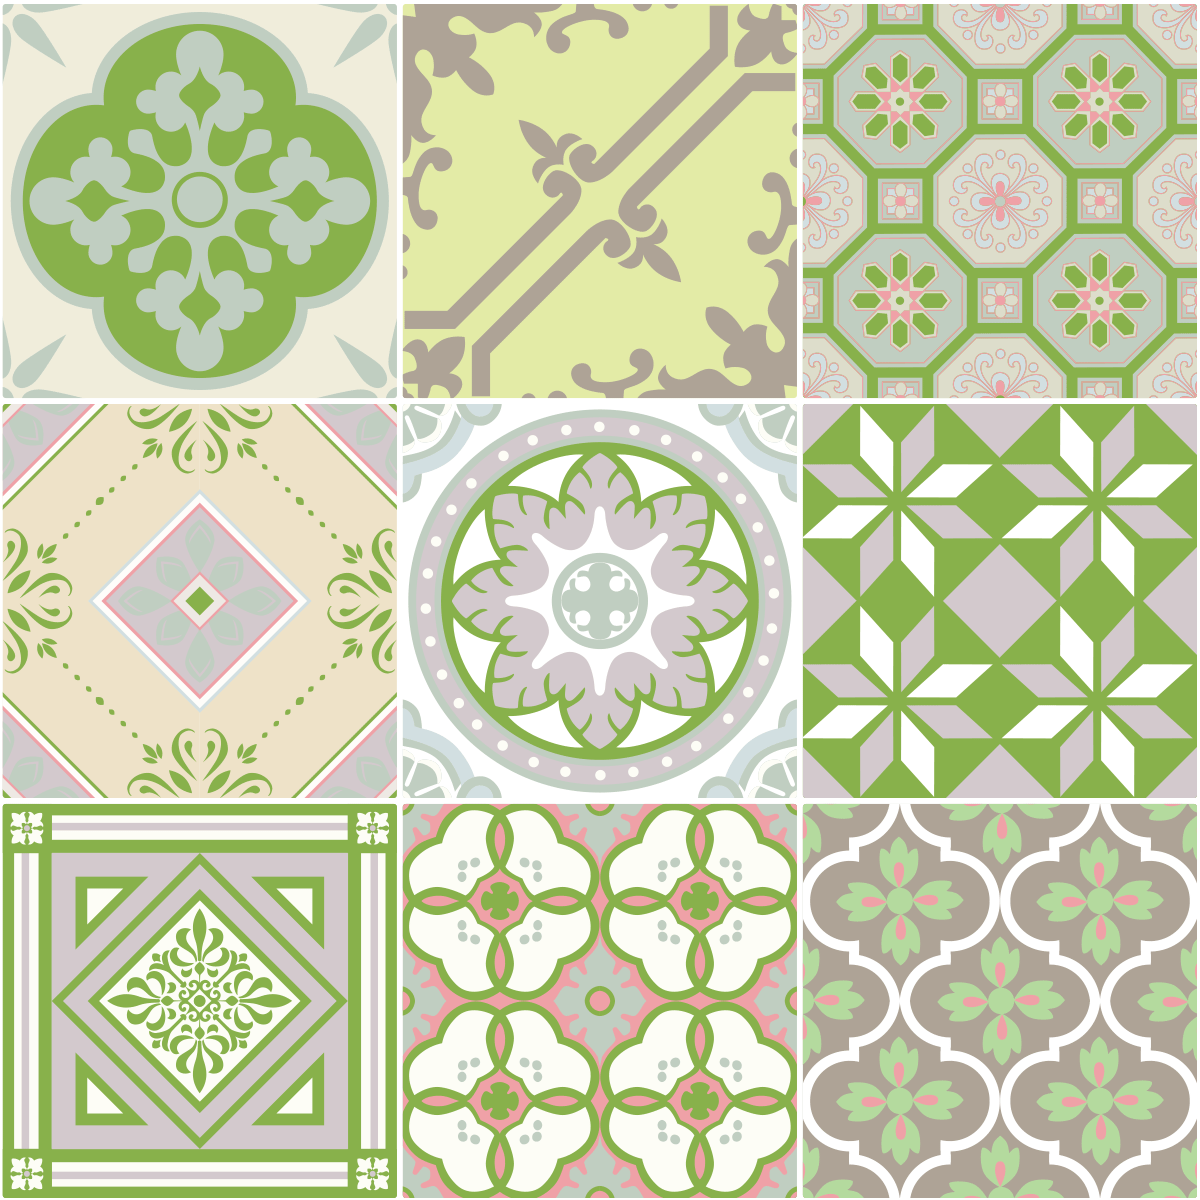 9 stickers carrelages azulejos nuance de vert art et design artistiques ambiance sticker. Black Bedroom Furniture Sets. Home Design Ideas